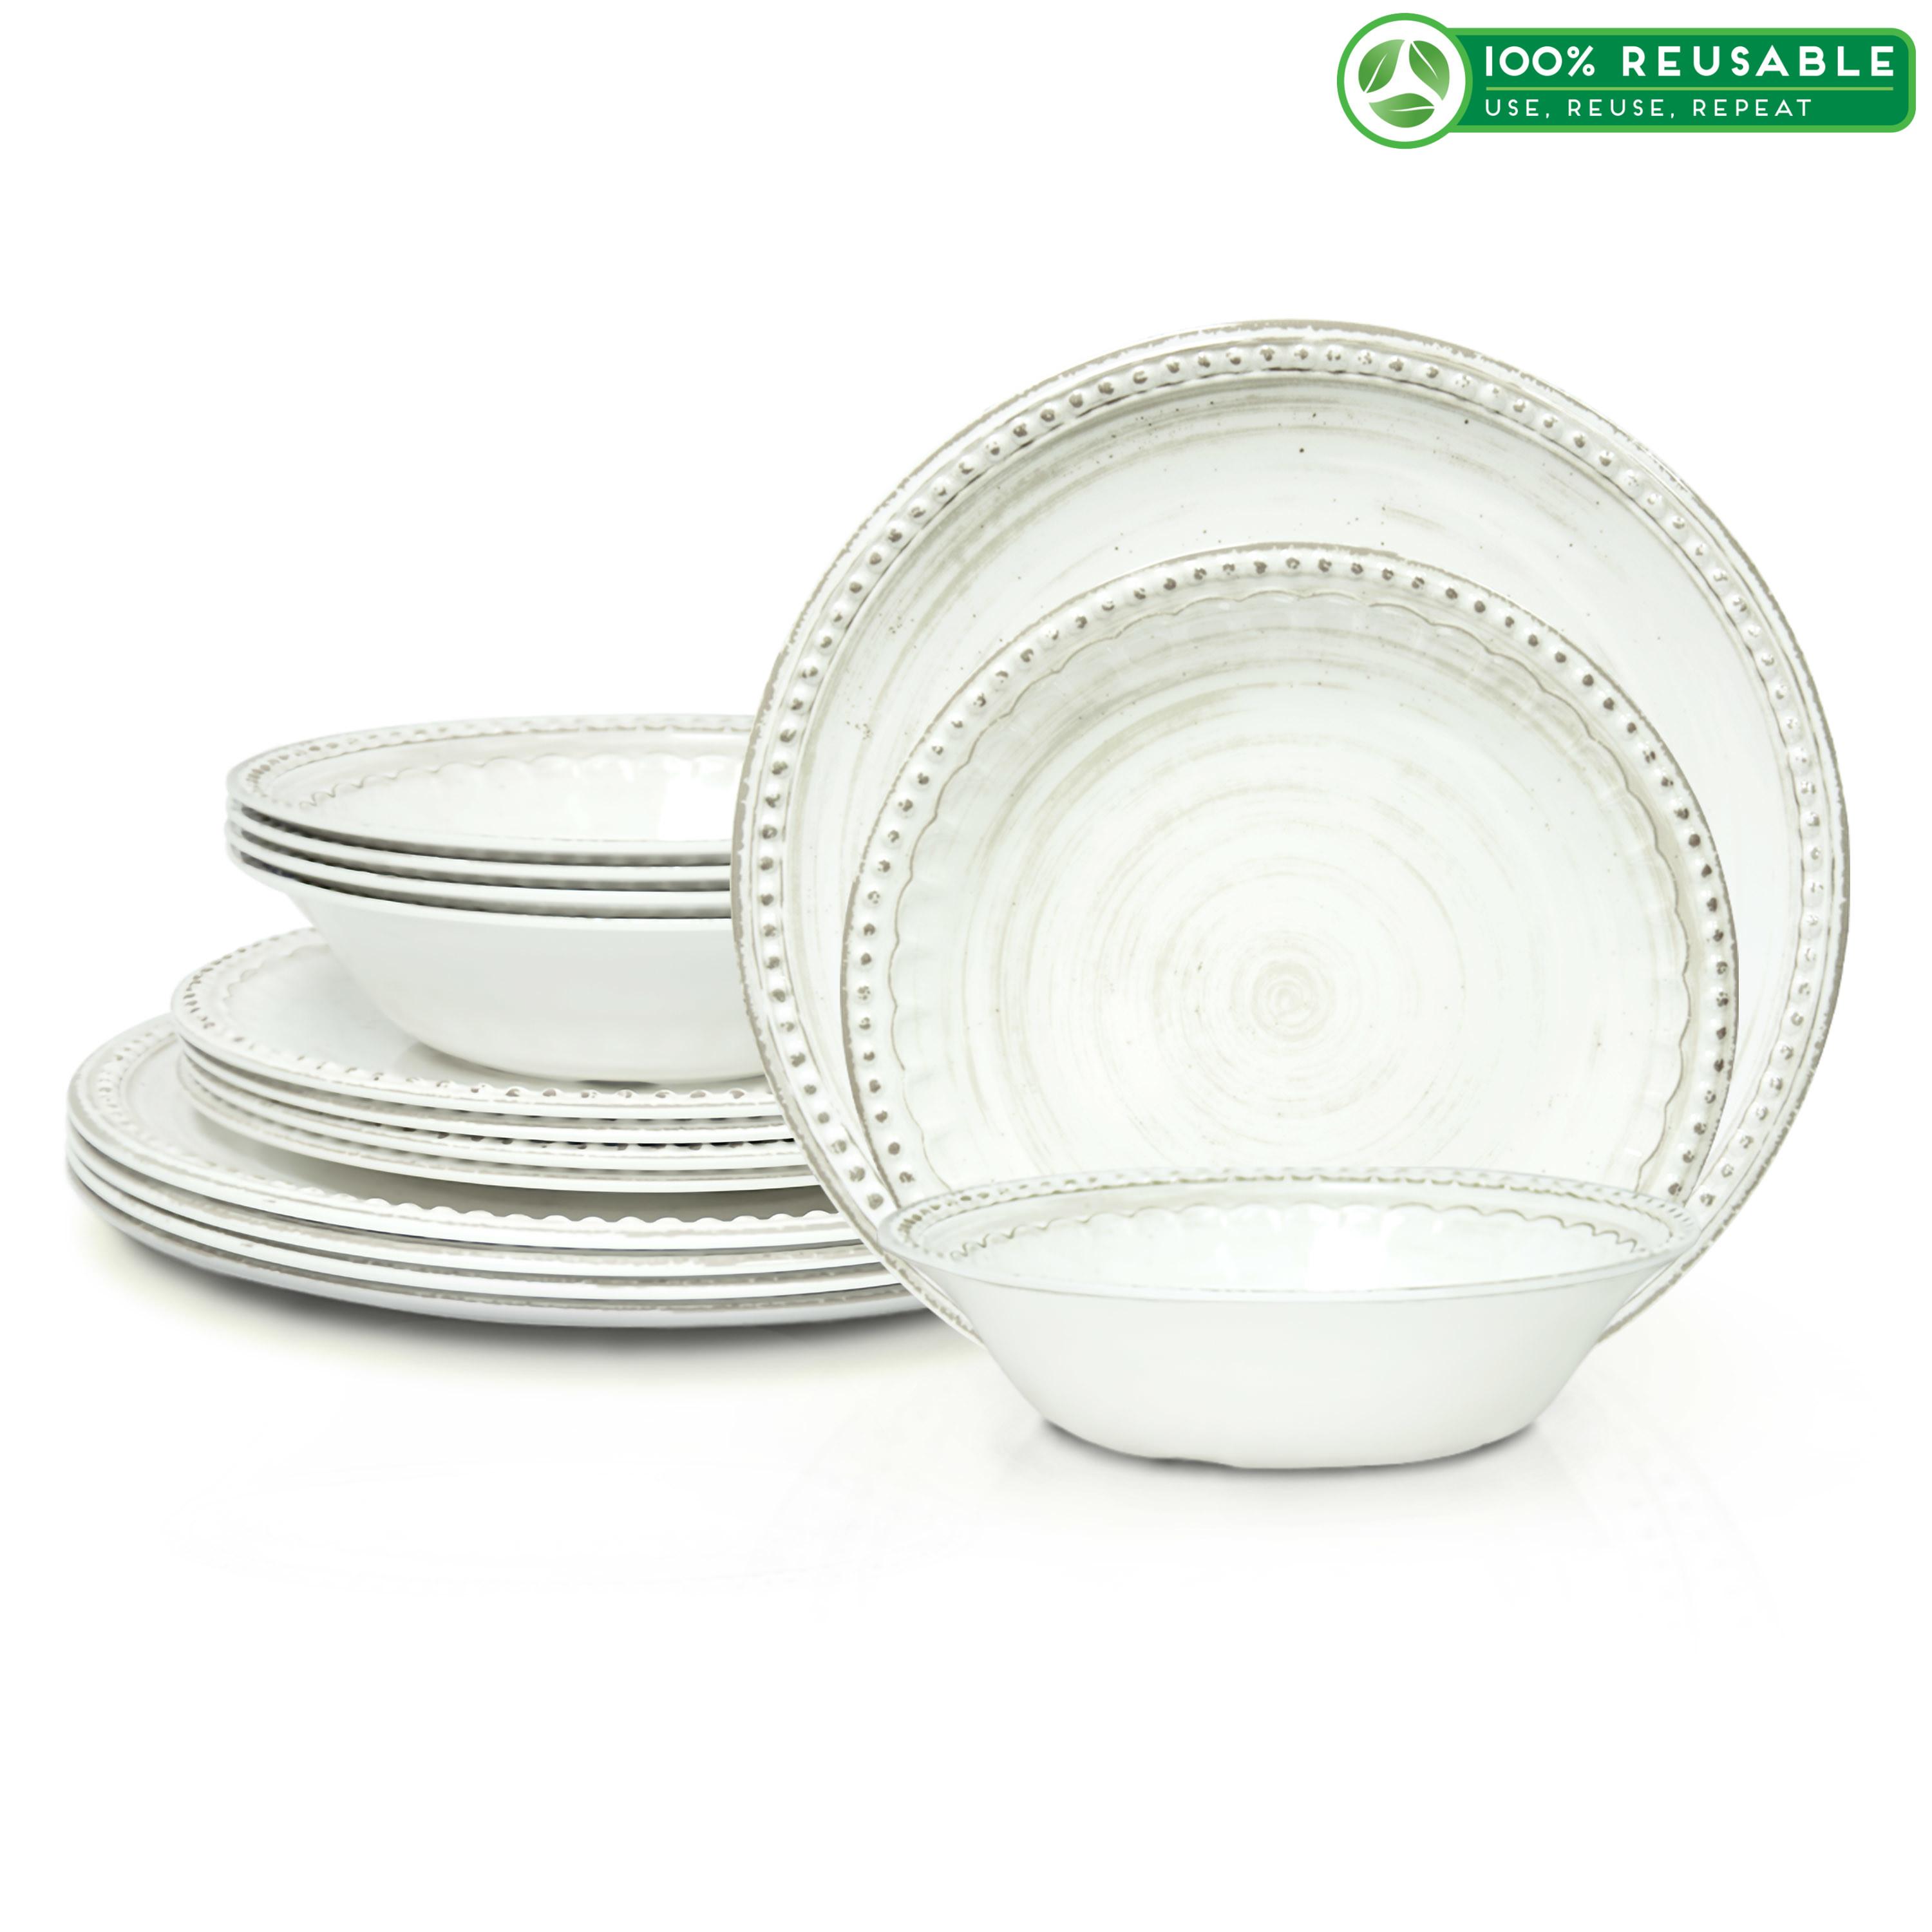 French Country Plate & Bowl Sets, White, 12-piece set slideshow image 1